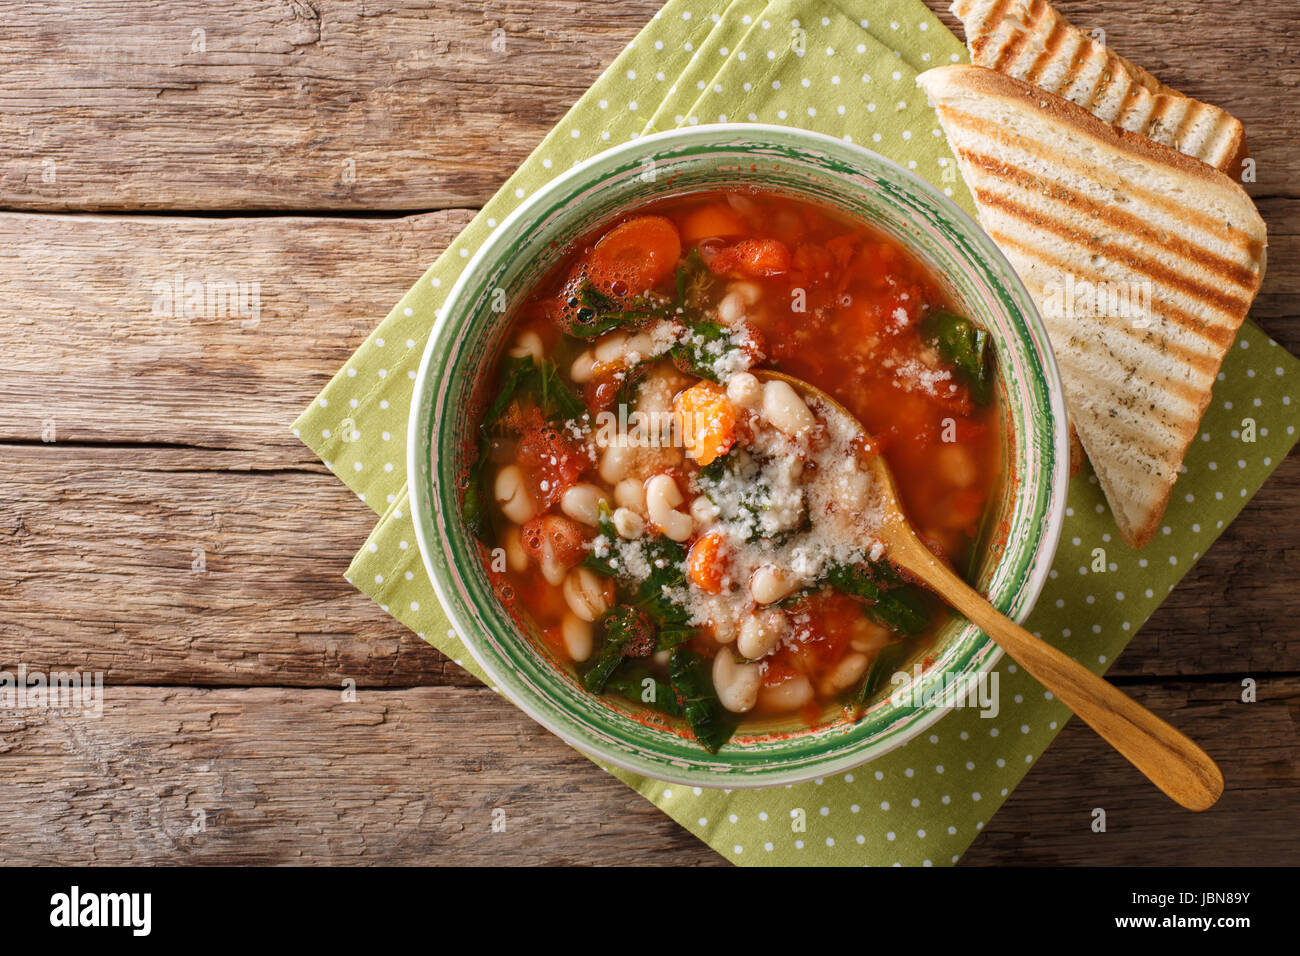 Tomato soup with beans, spinach and parmesan close-up on the table. horizontal view from above - Stock Image